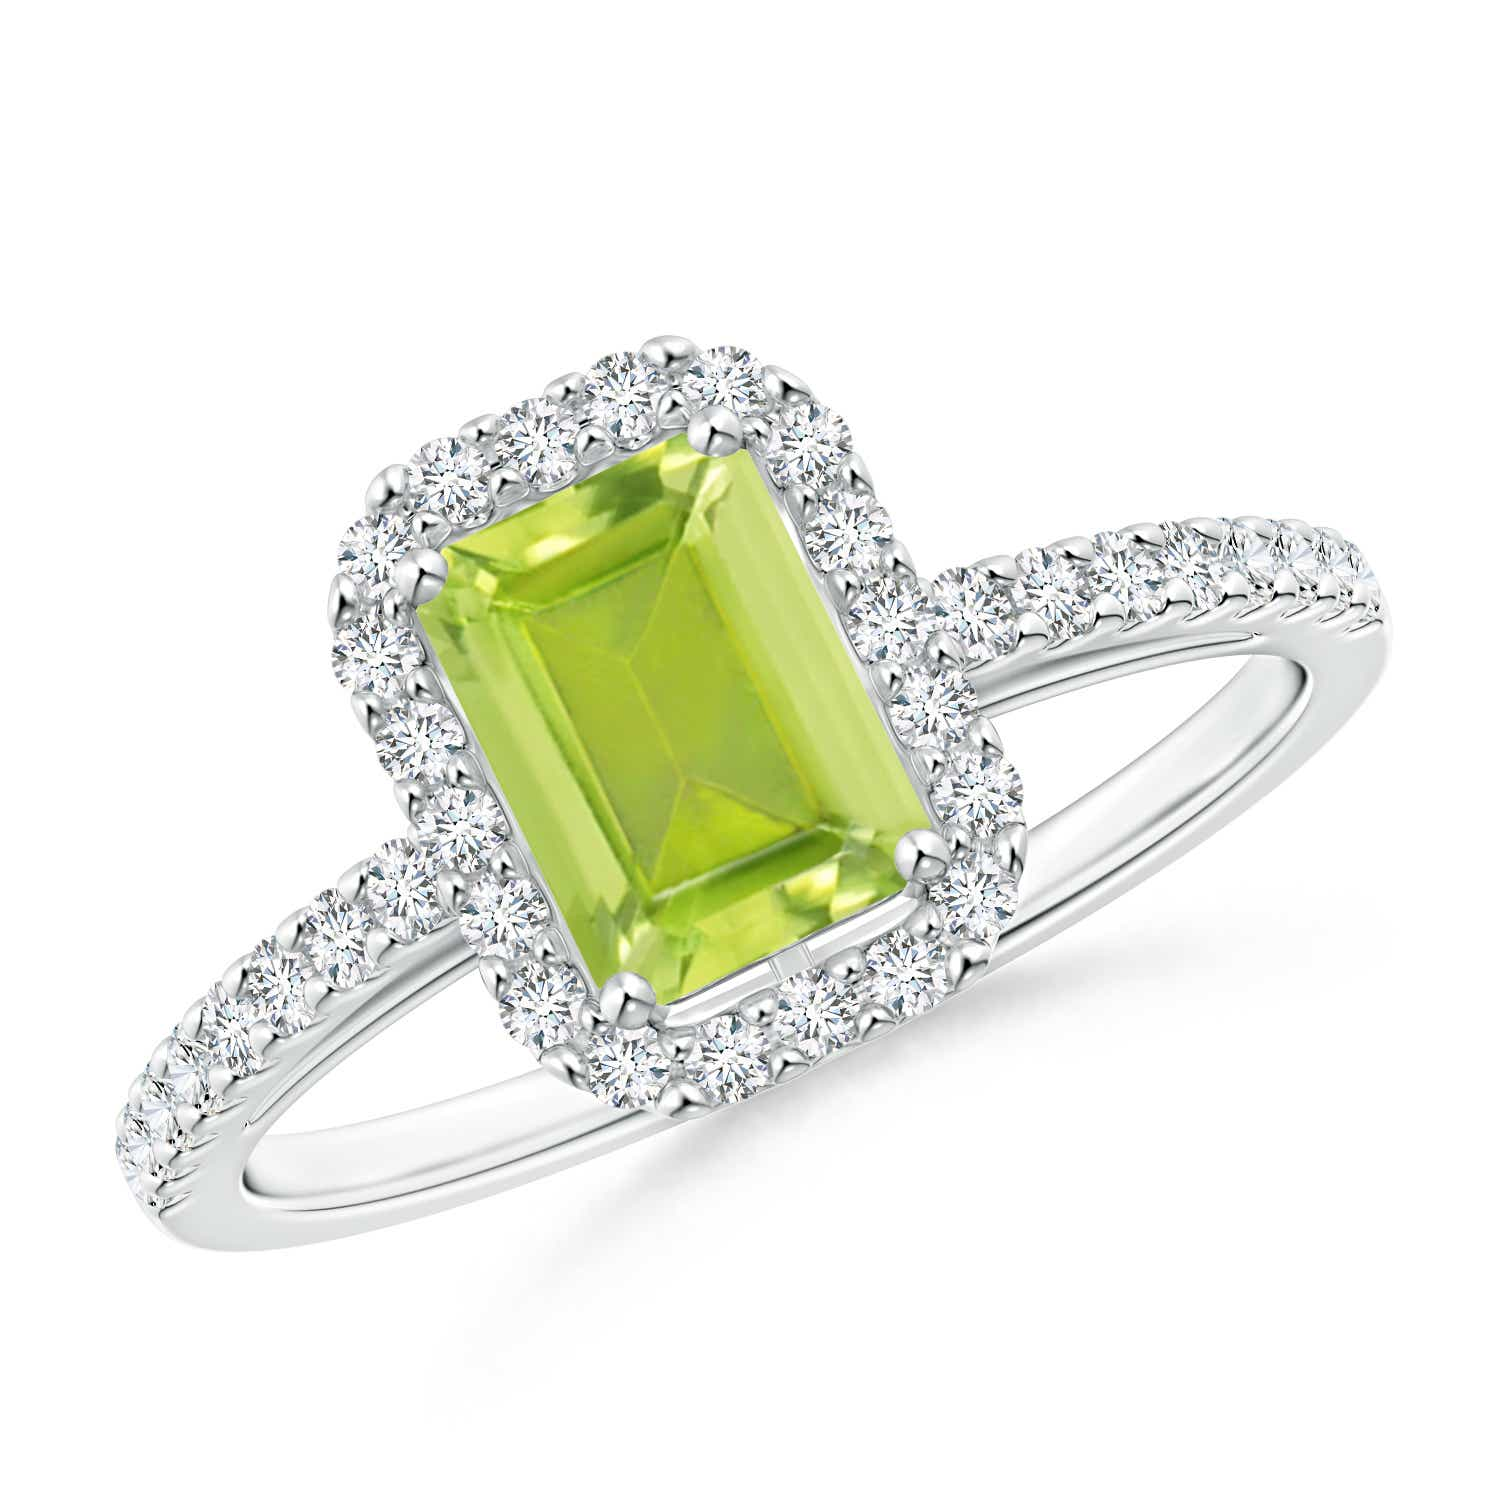 Angara Emerald-Cut Peridot Solitaire Ring with Diamond in White Gold NmIepc